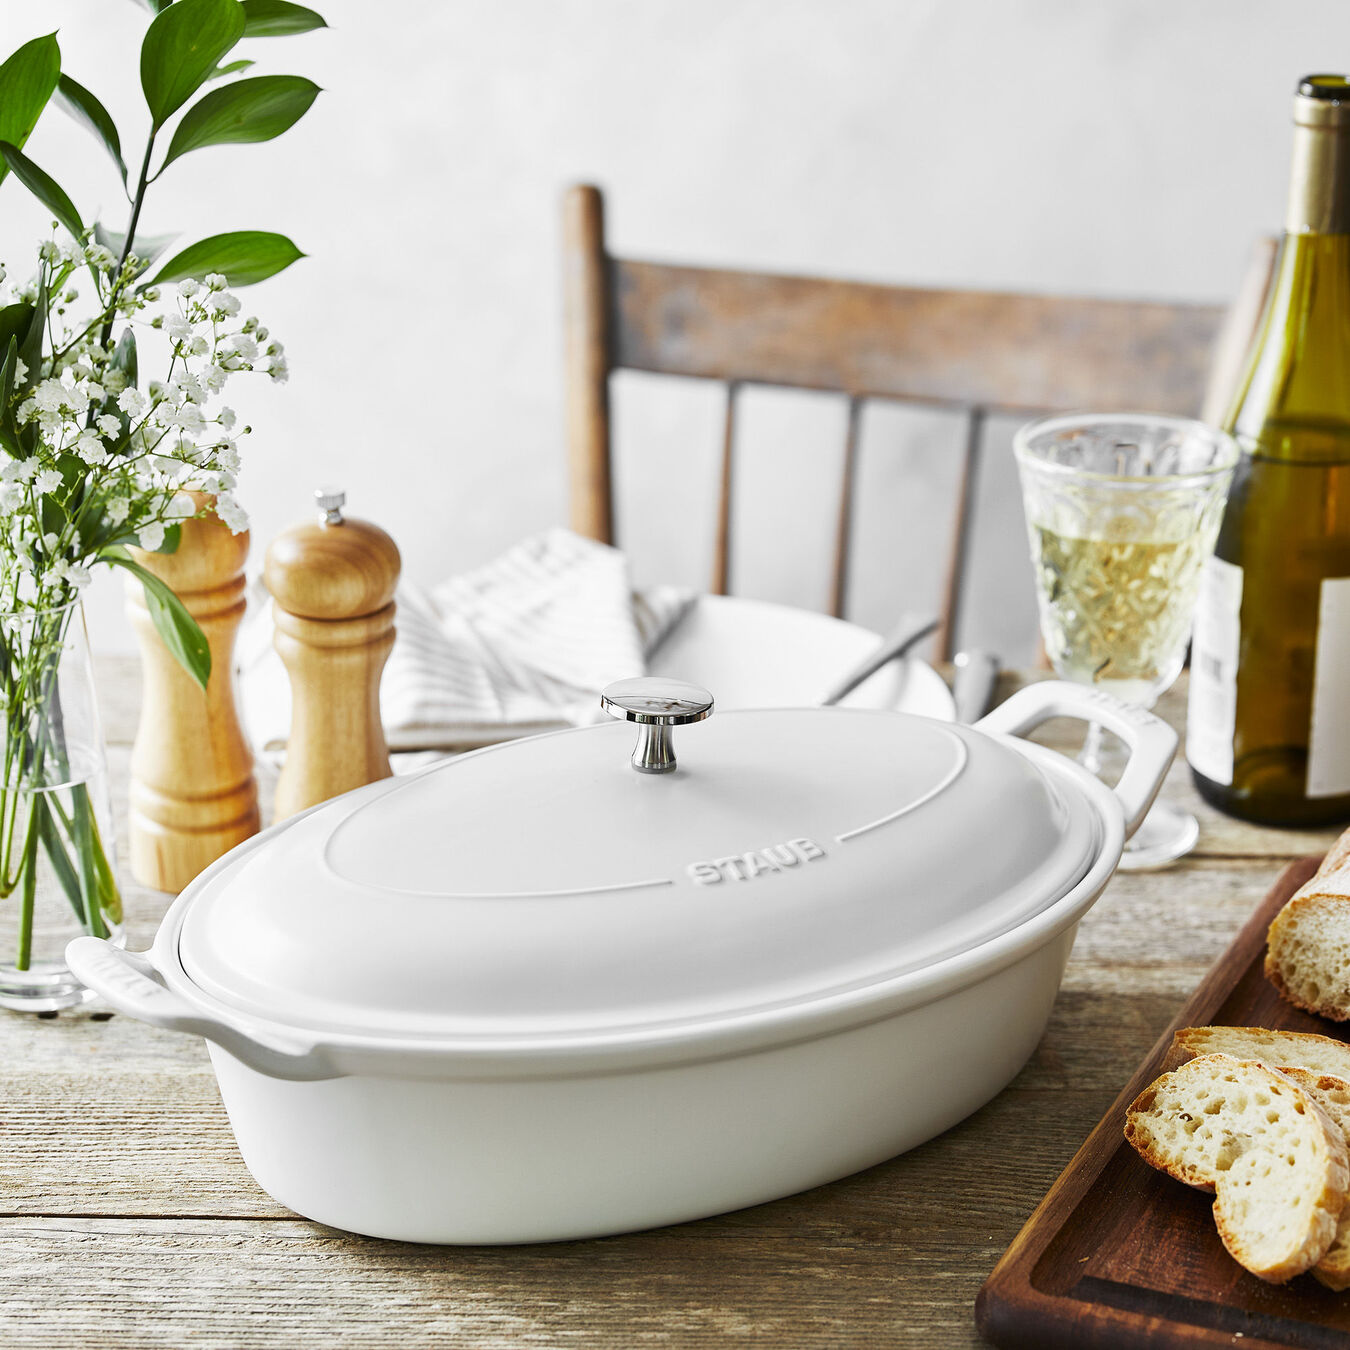 14-inch Oval Covered Baking Dish - Matte White,,large 7